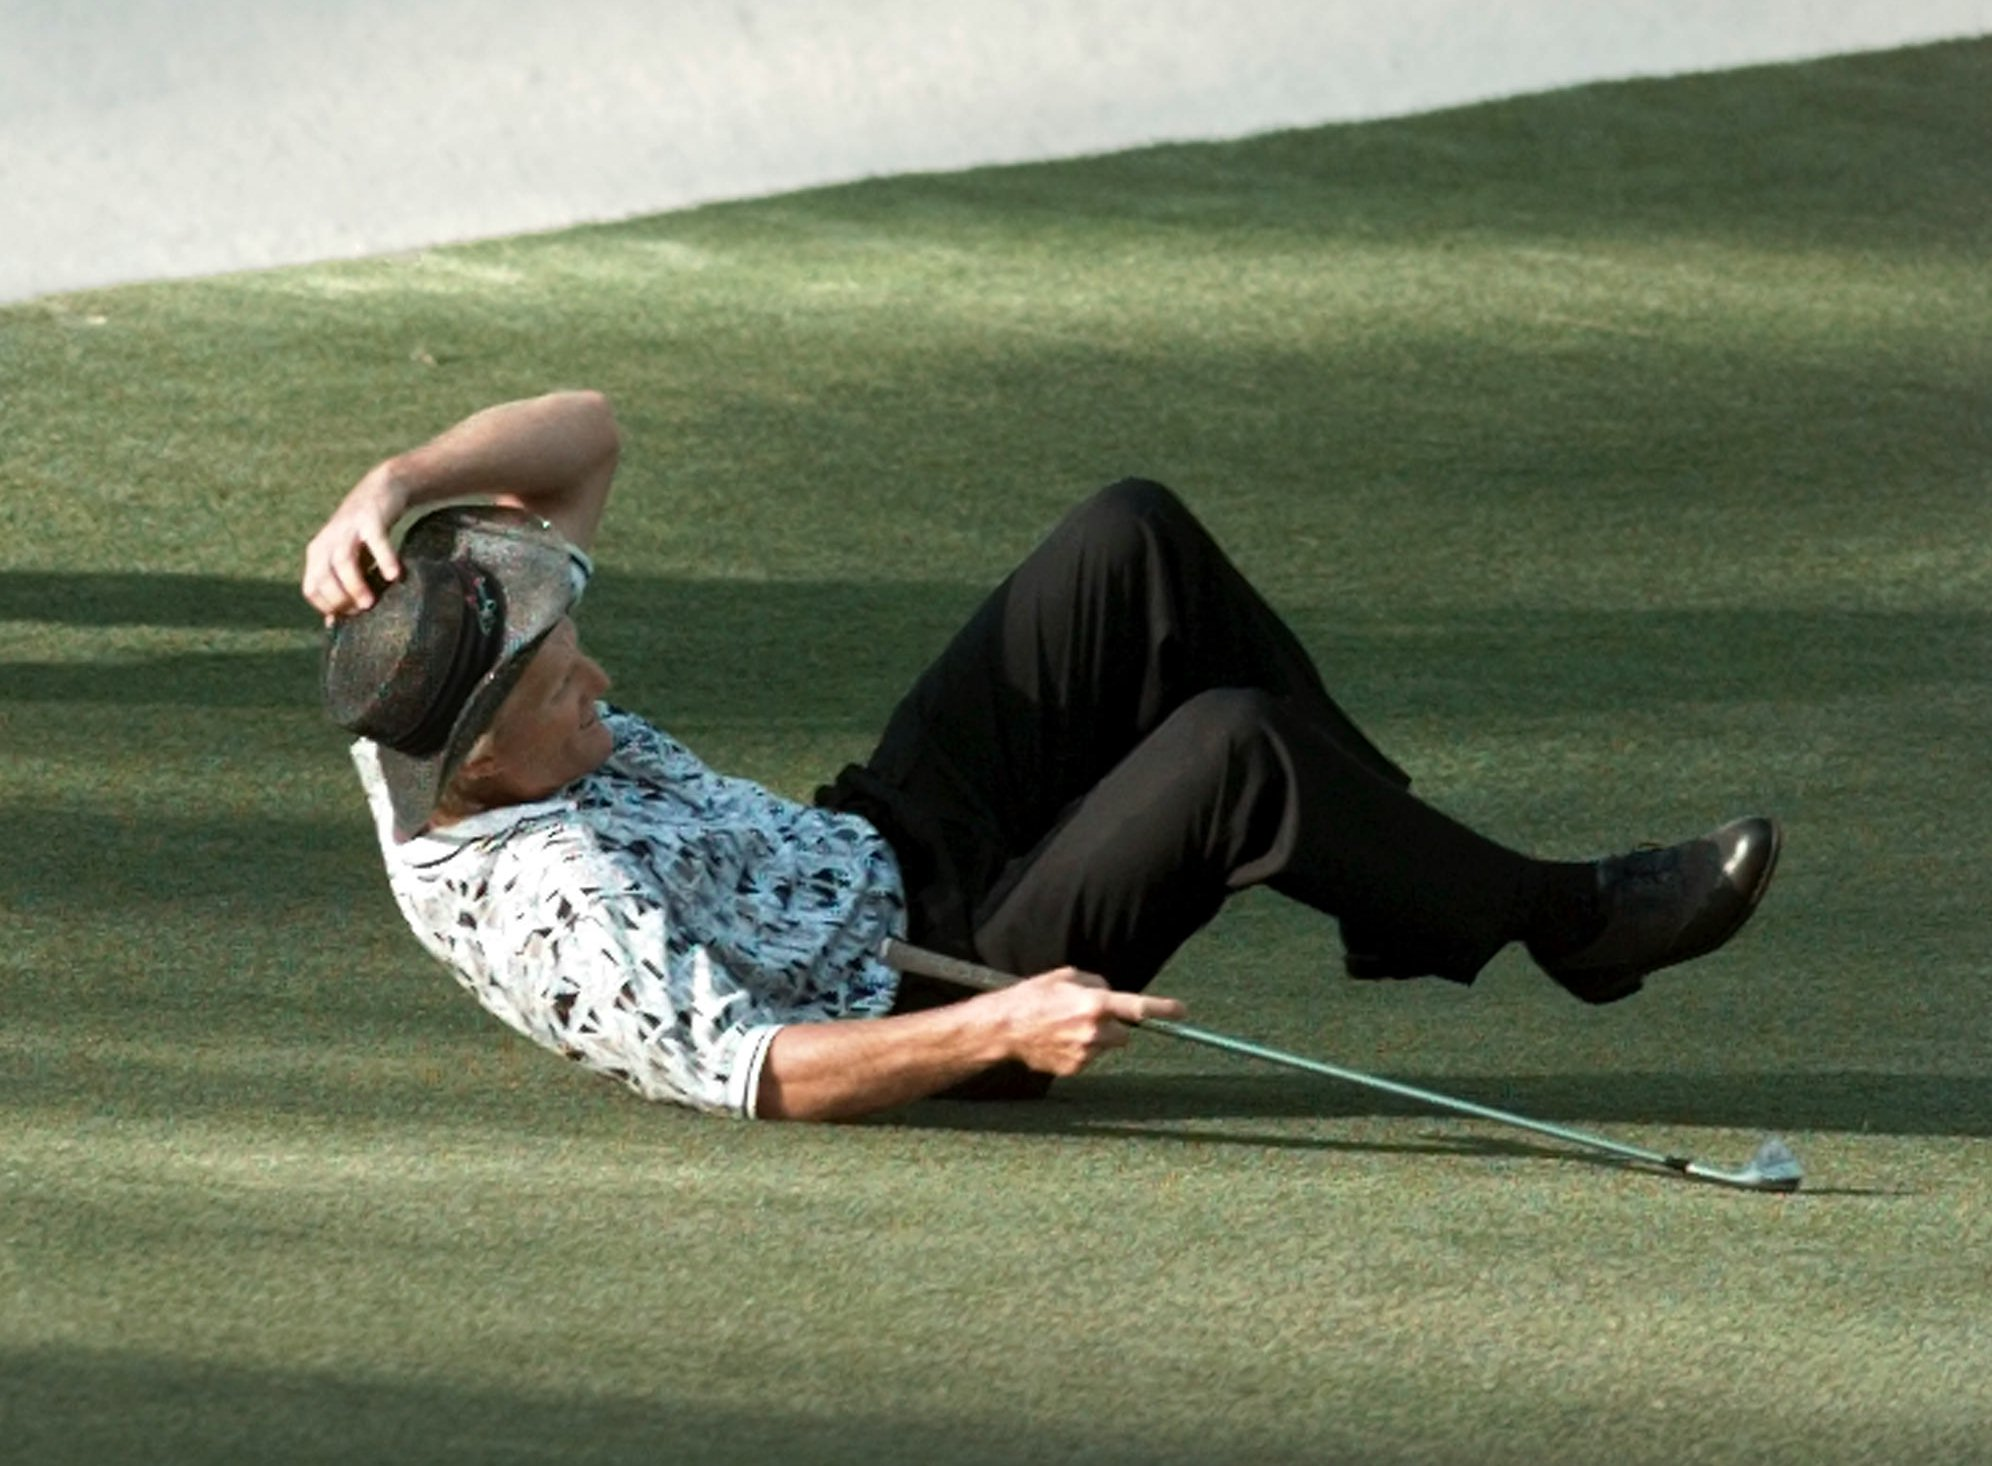 Greg Norman falls to the ground after missing his shot for an eagle on the 15th hole during final round play of the 1996 Masters at the Augusta National Golf Club in Augusta, Ga., Sunday , April 14, 1996. (AP Photo/Dave Martin)